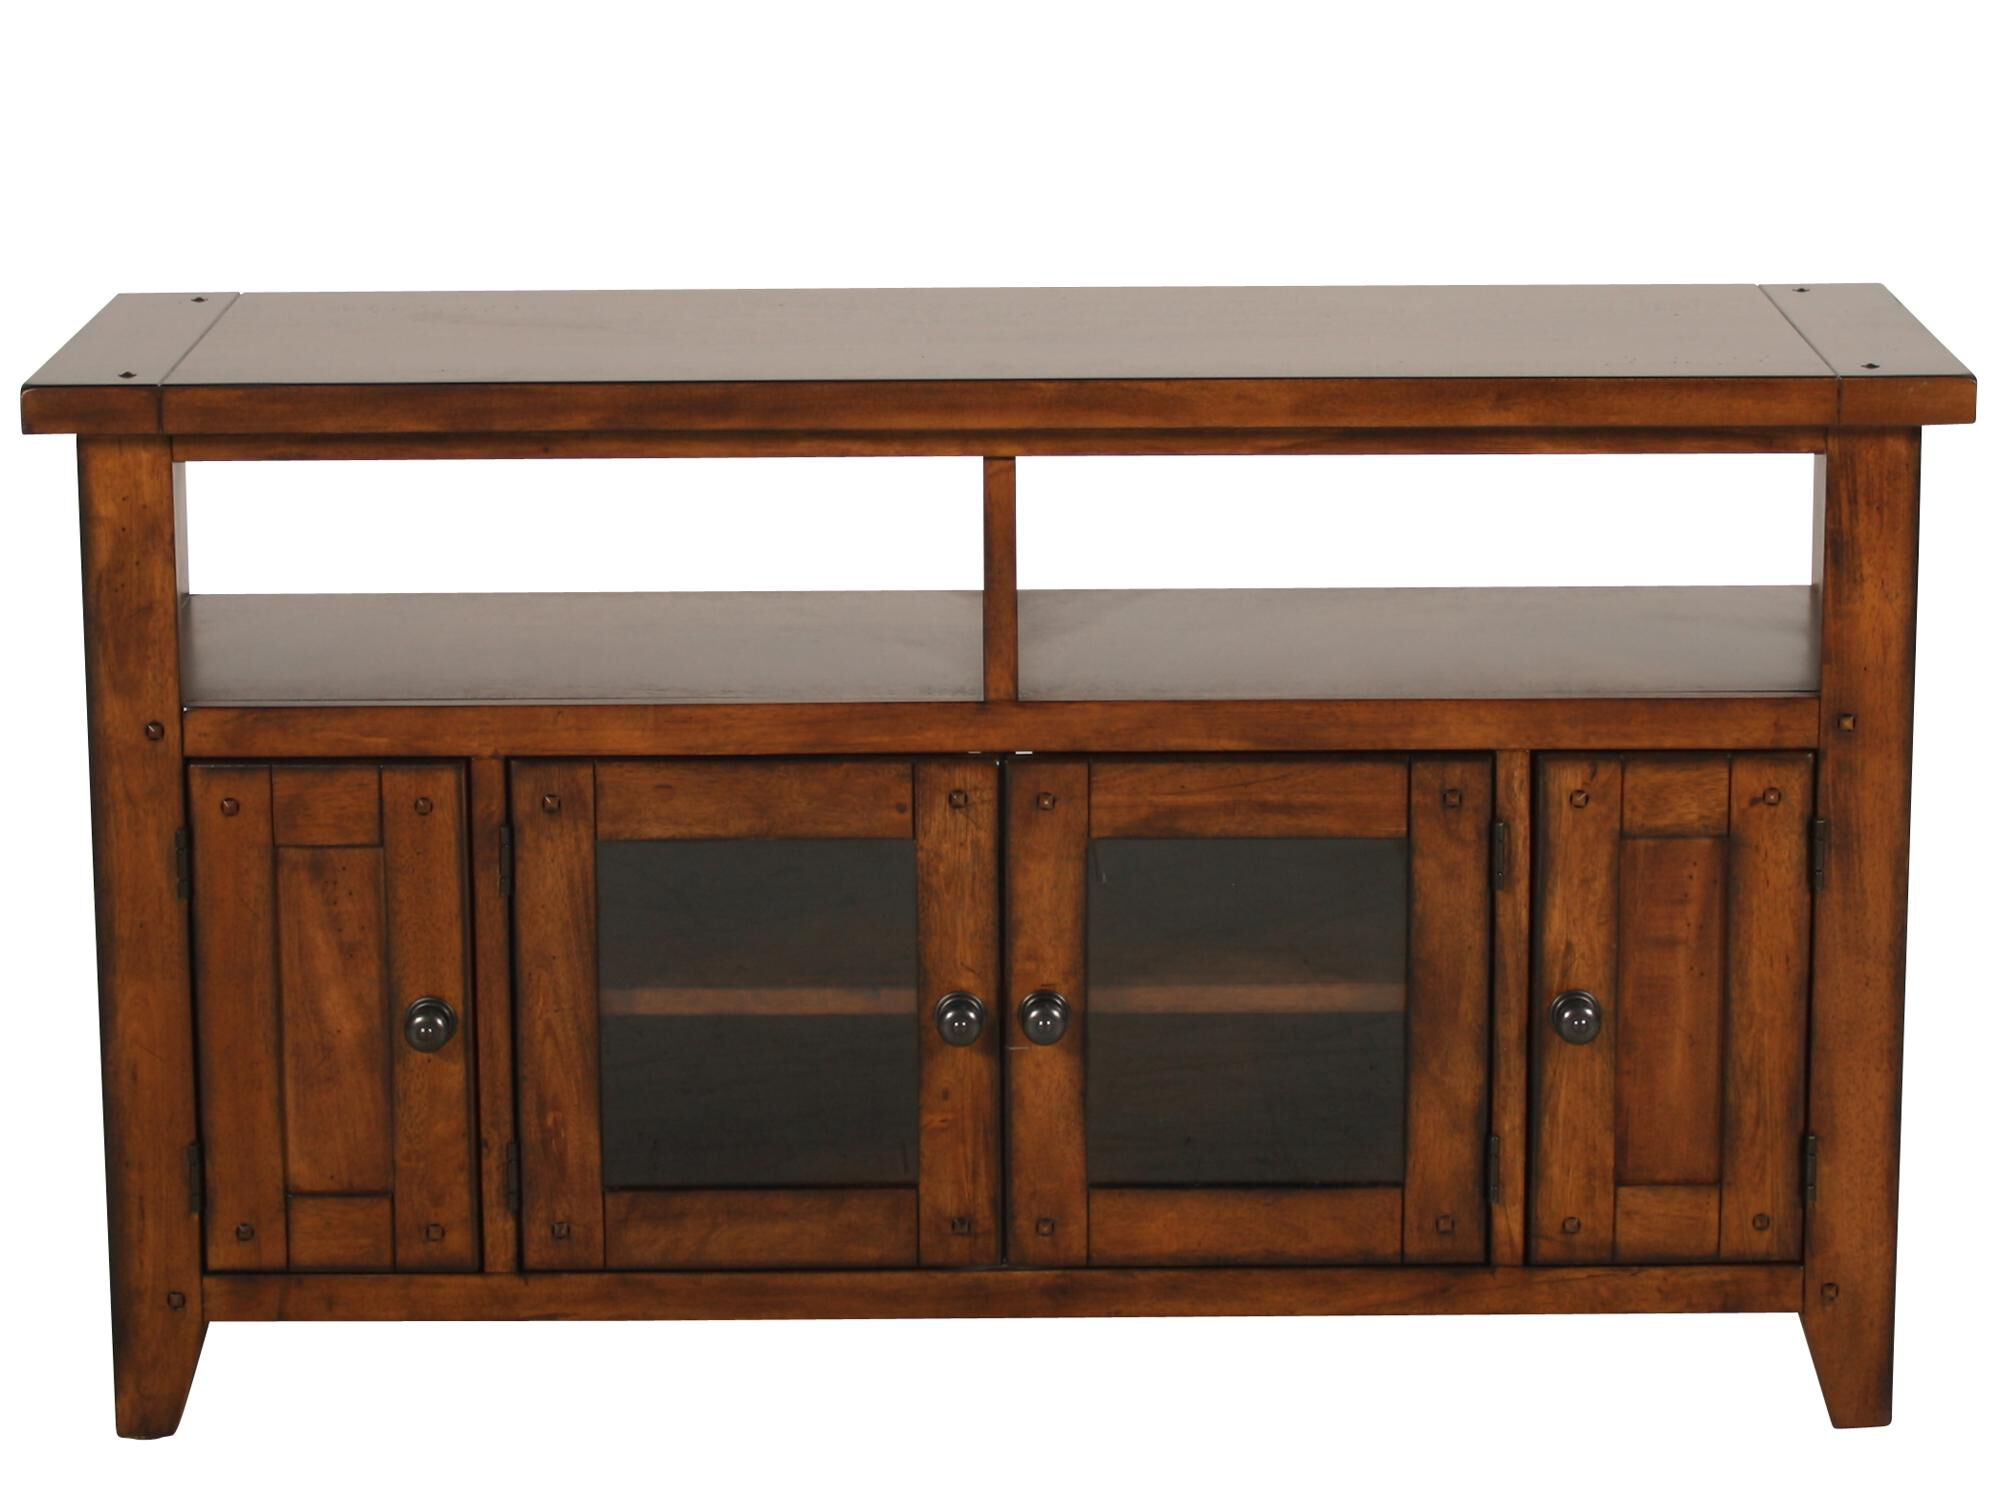 Two Glass Door Country Entertainment Consoleu0026nbsp;in Saddle Brown